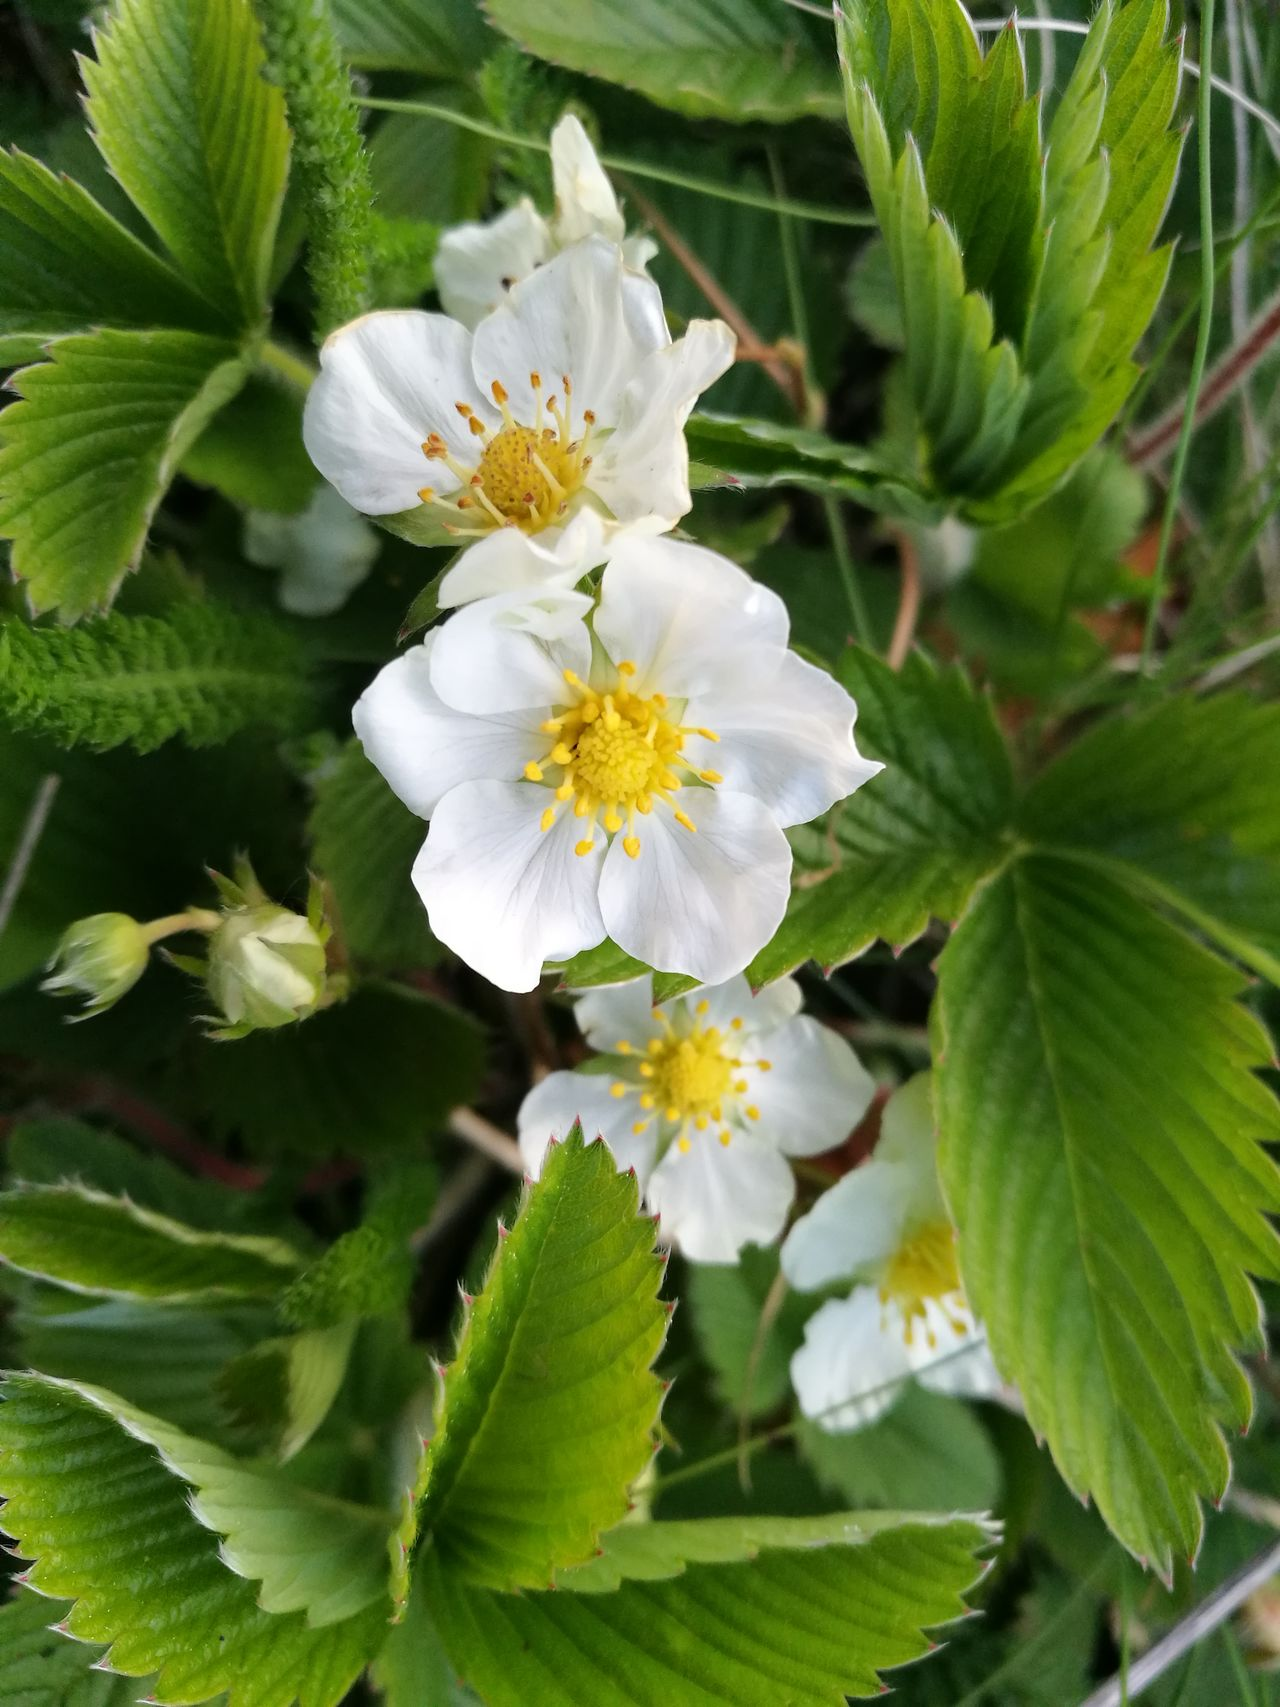 Wild strawberry flowers Flower Fragility White Color Blossom Flower Head Leaf Botany Springtime Petal Close-up Stamen Beauty In Nature Freshness Nature Growth Day No People Outdoors